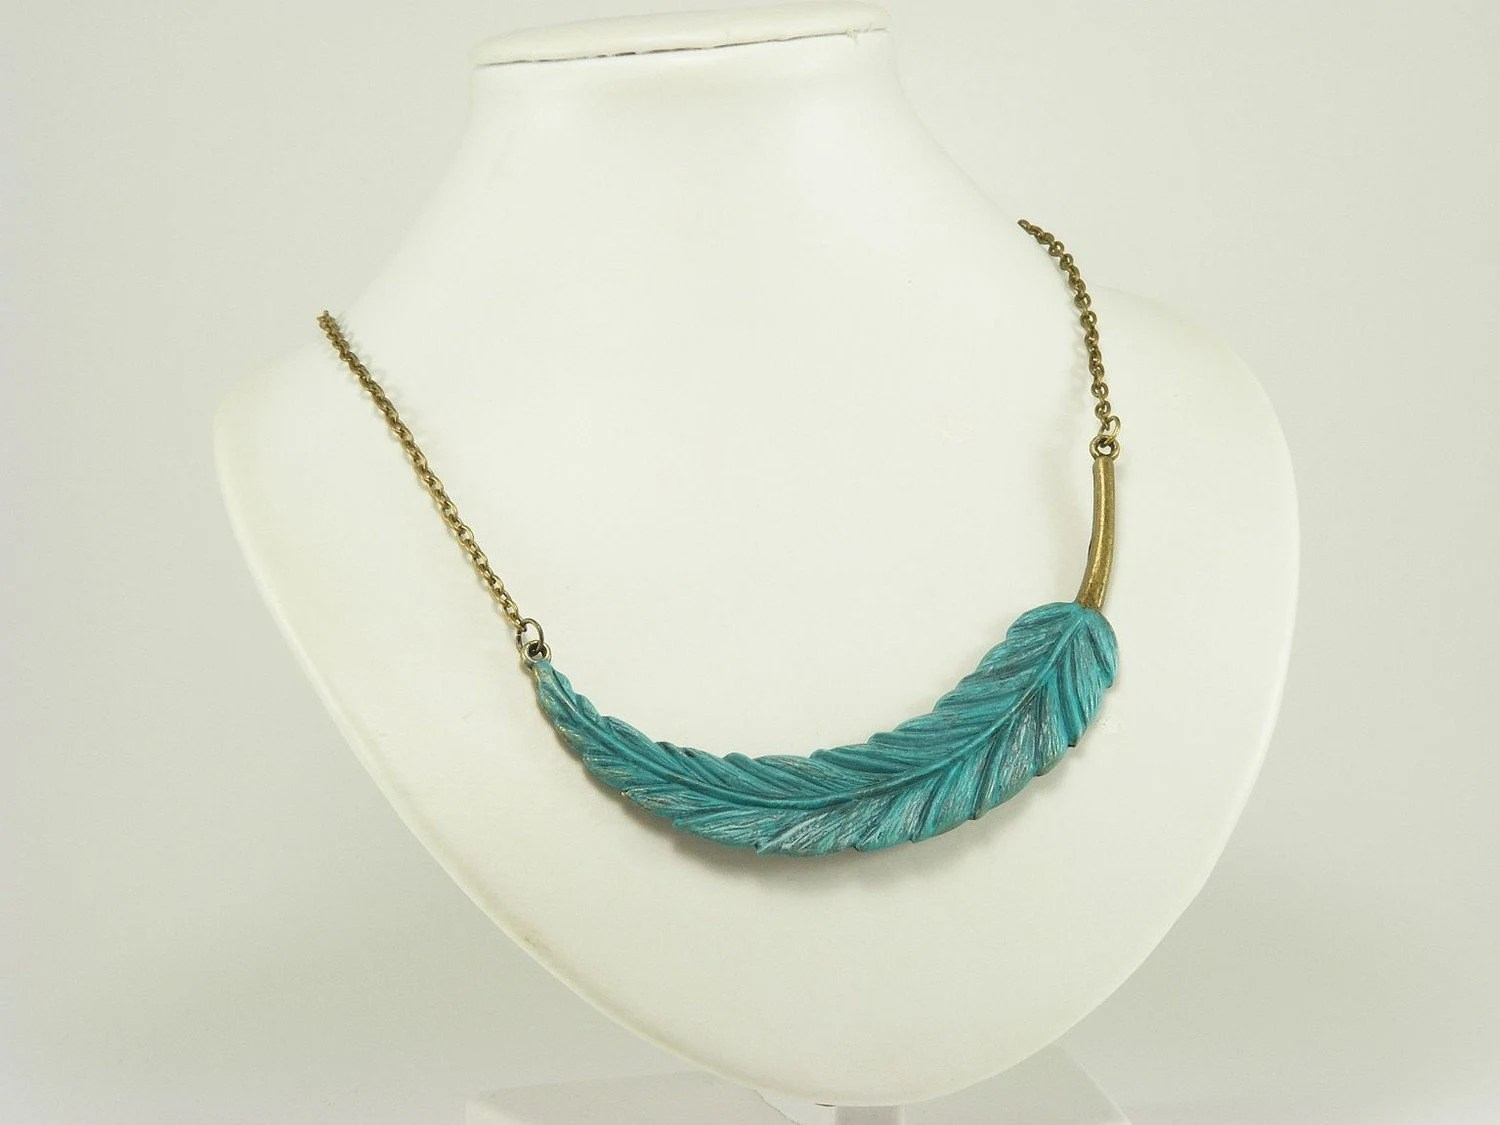 Turquoise Feather Necklace from Gleeful Peacock